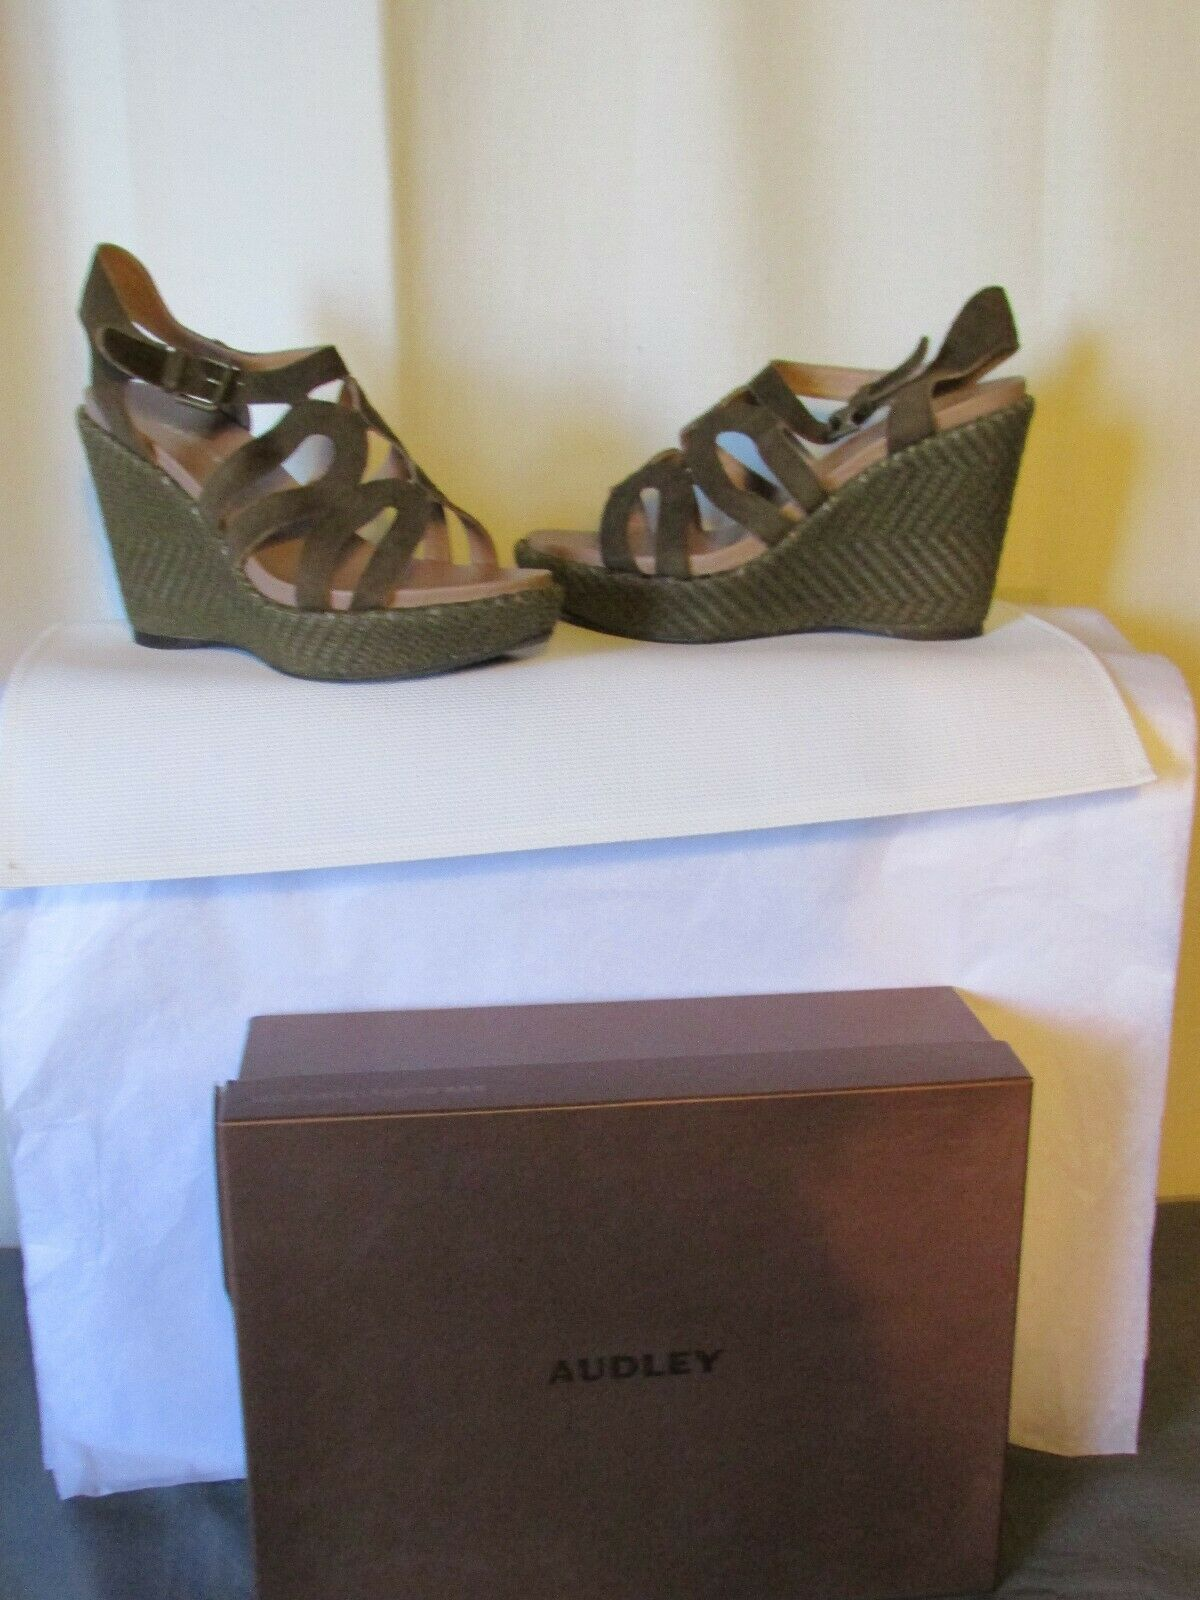 Wedge Sandals Audley Suede Khaki Size 38